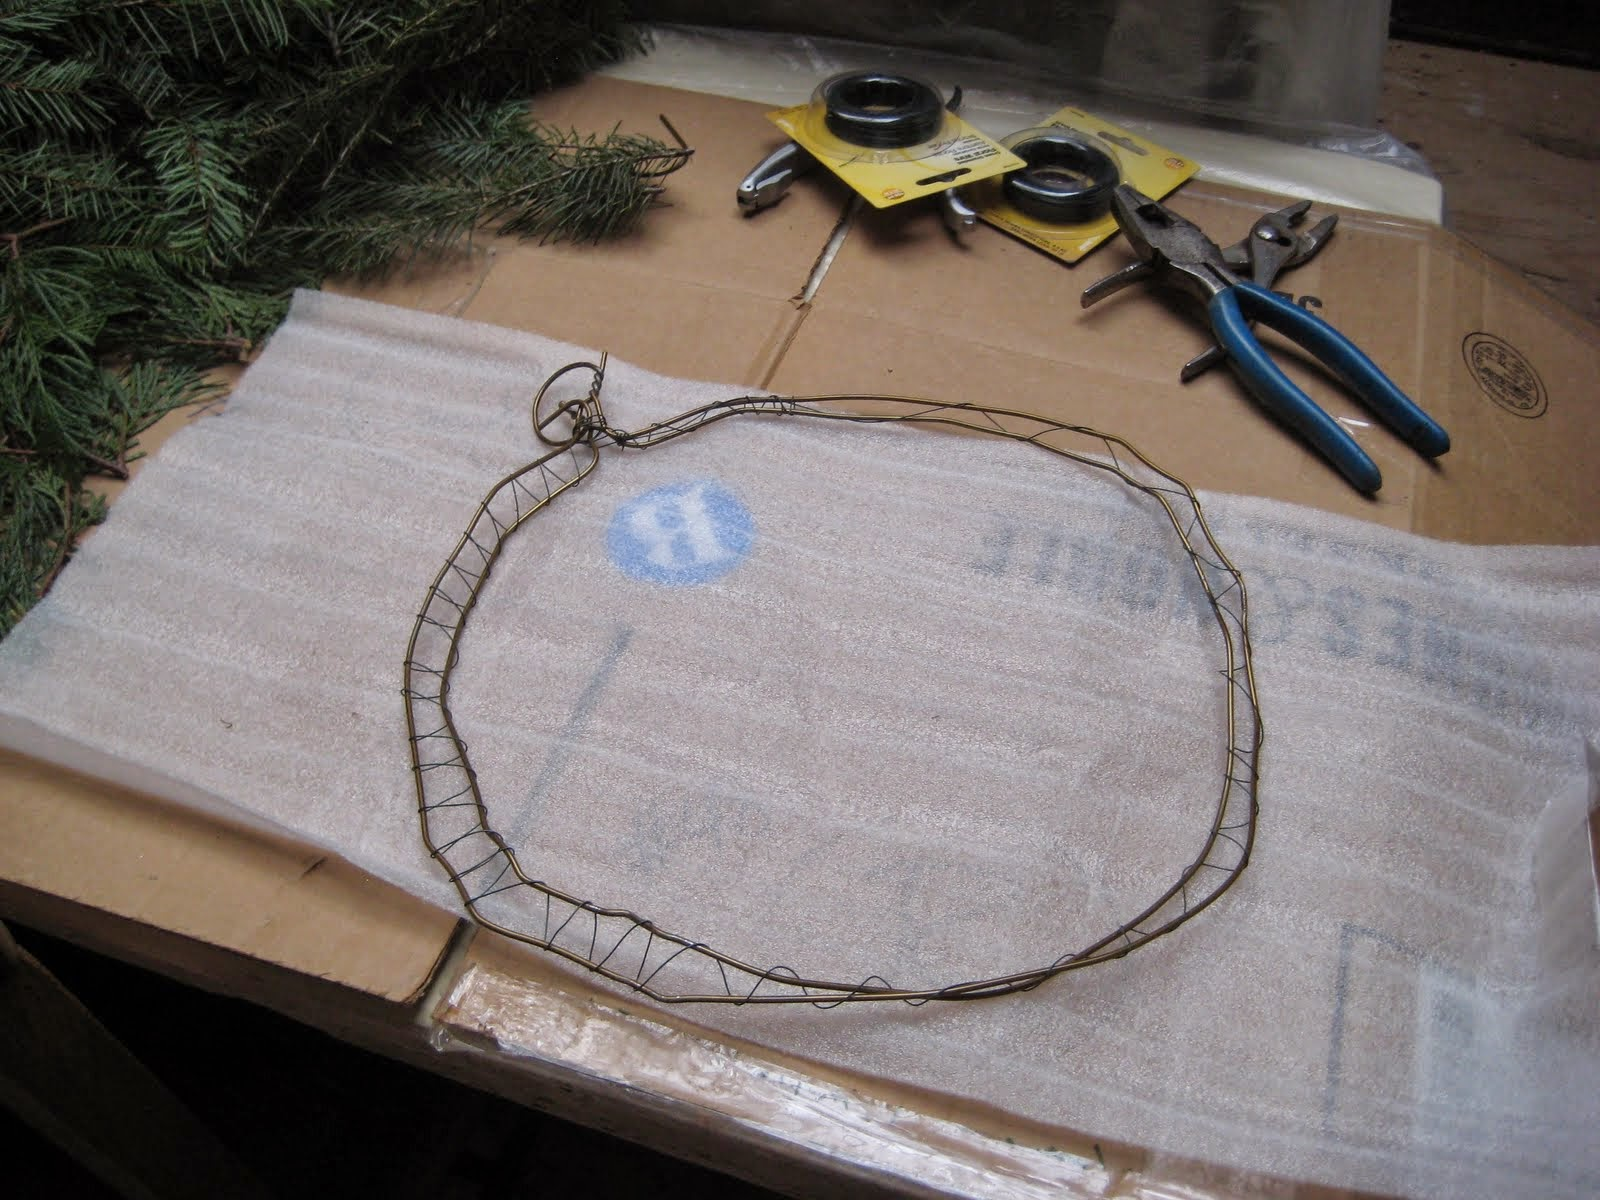 Chickens On The Porch: Coat Hanger Christmas Wreath Or How To Make A ...